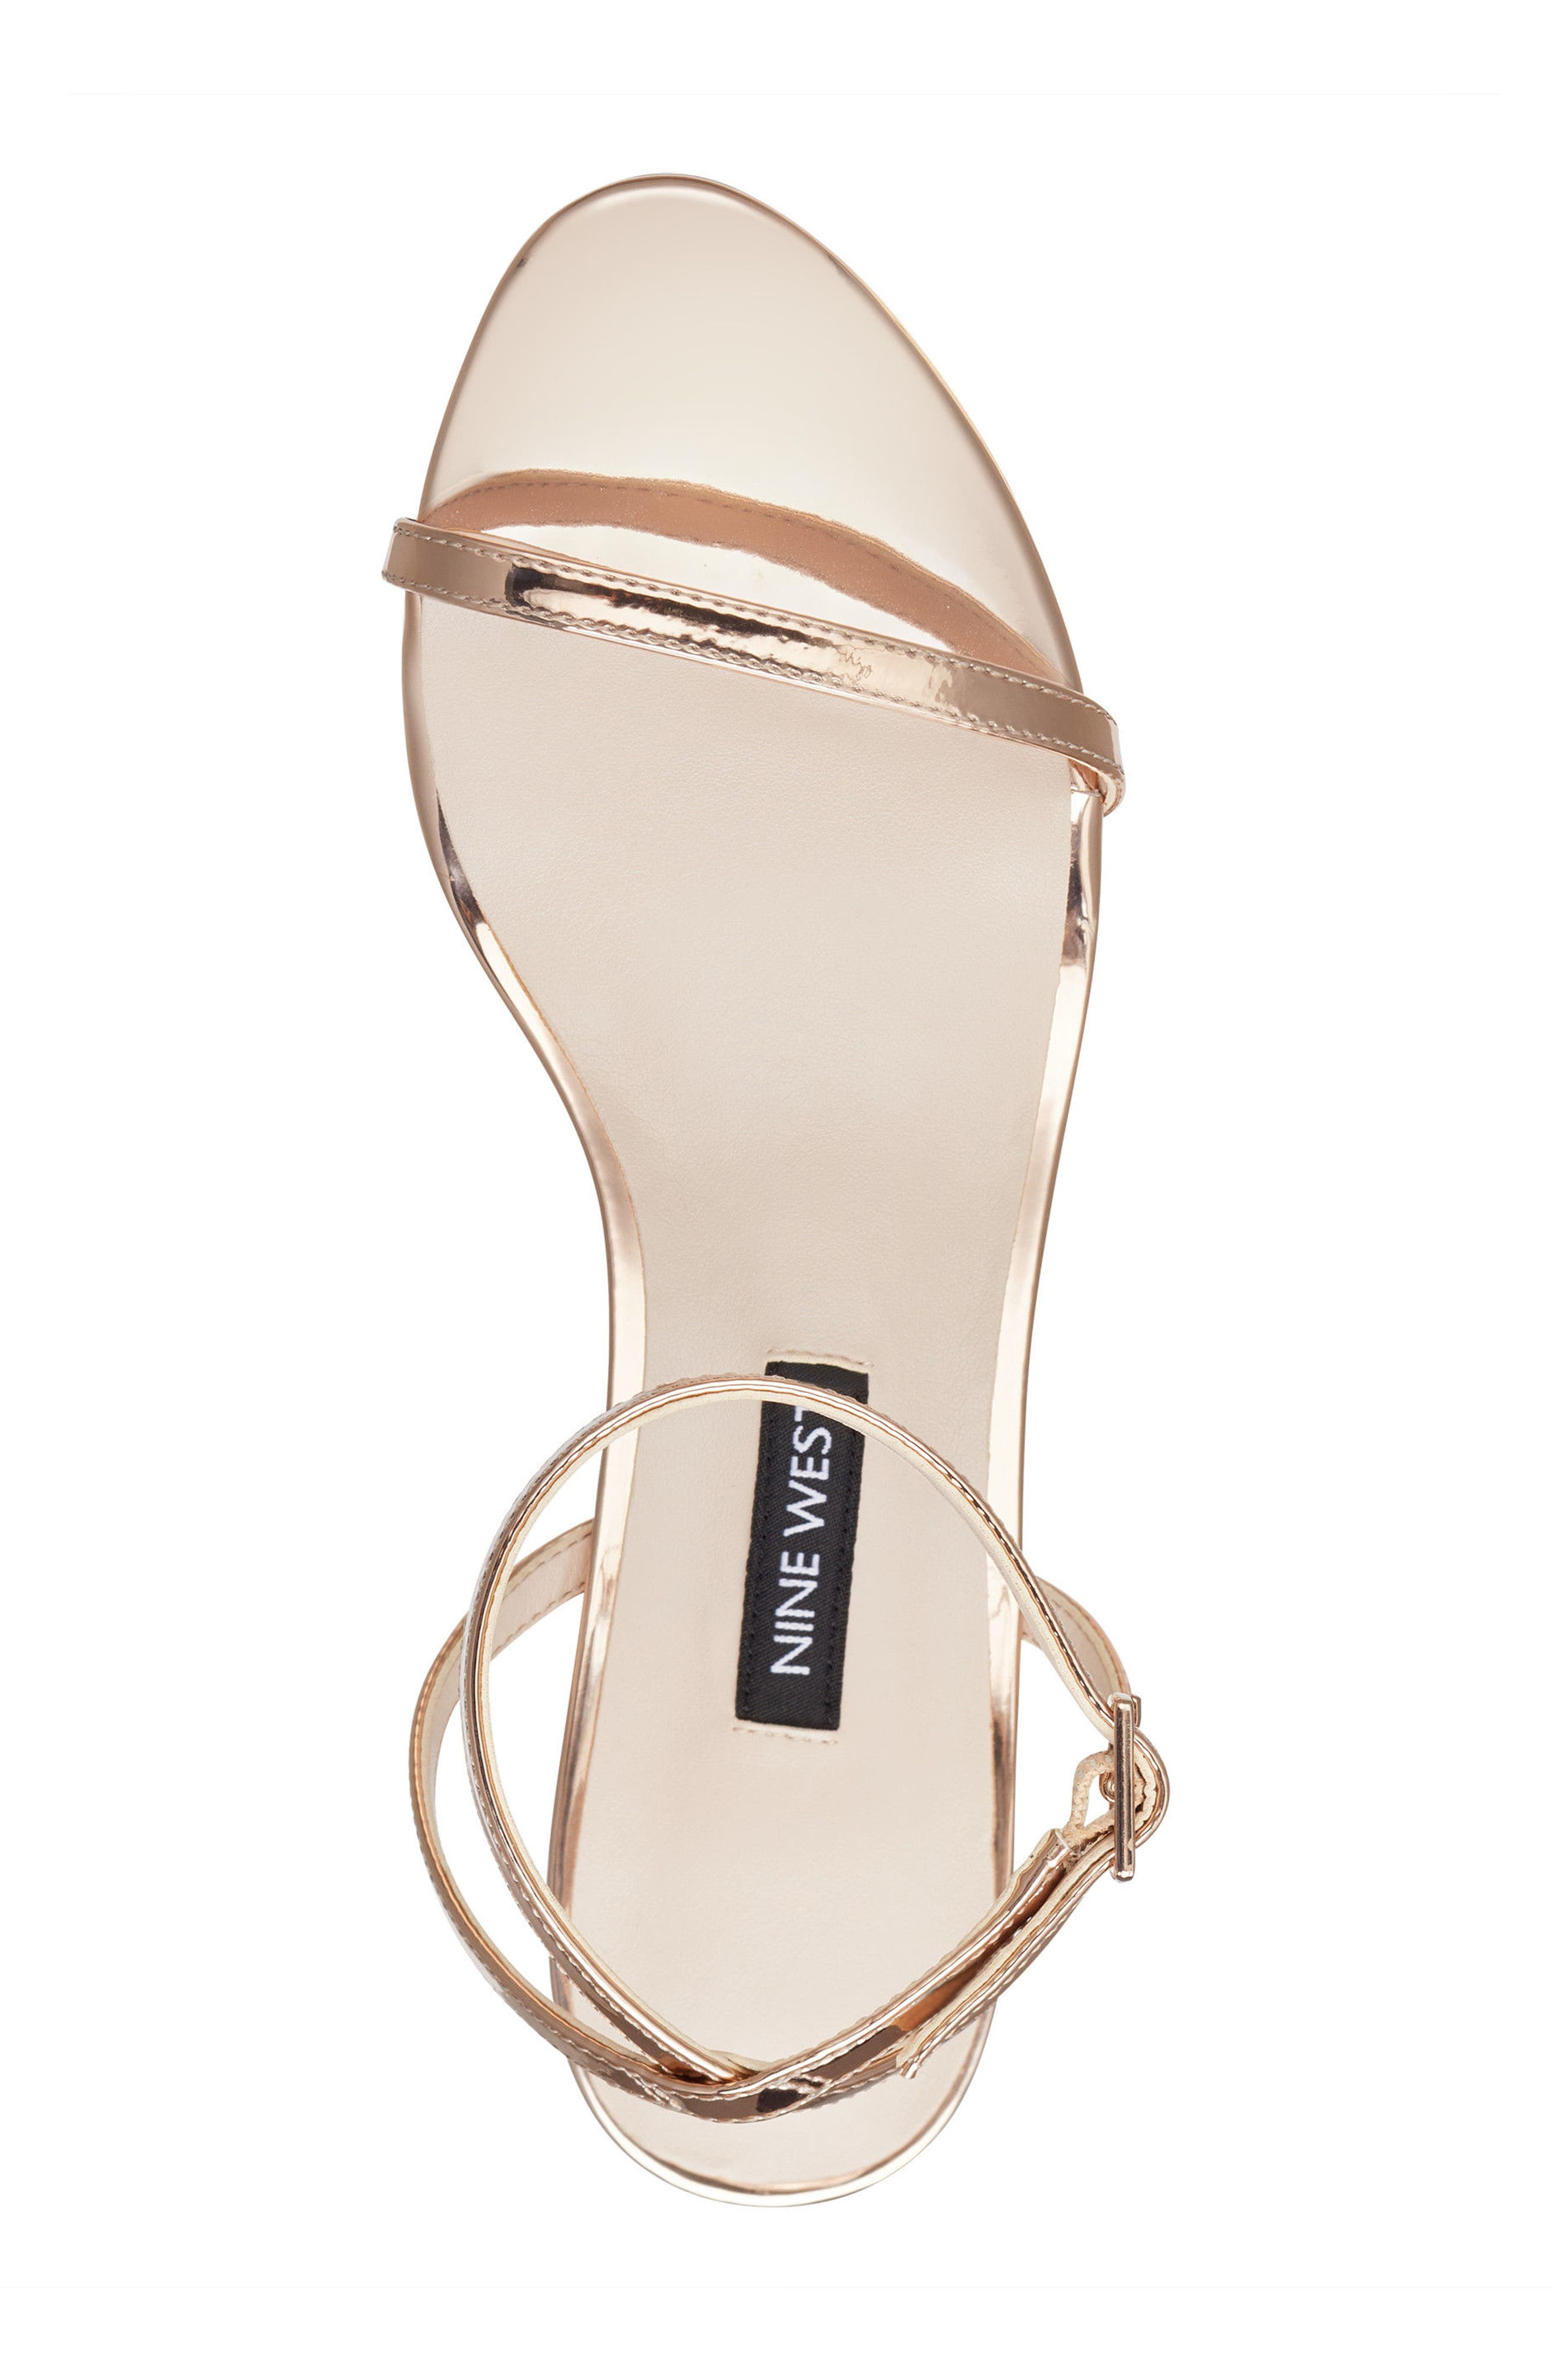 Provein Strappy Sandal,                             Alternate thumbnail 5, color,                             Pink Faux Leather